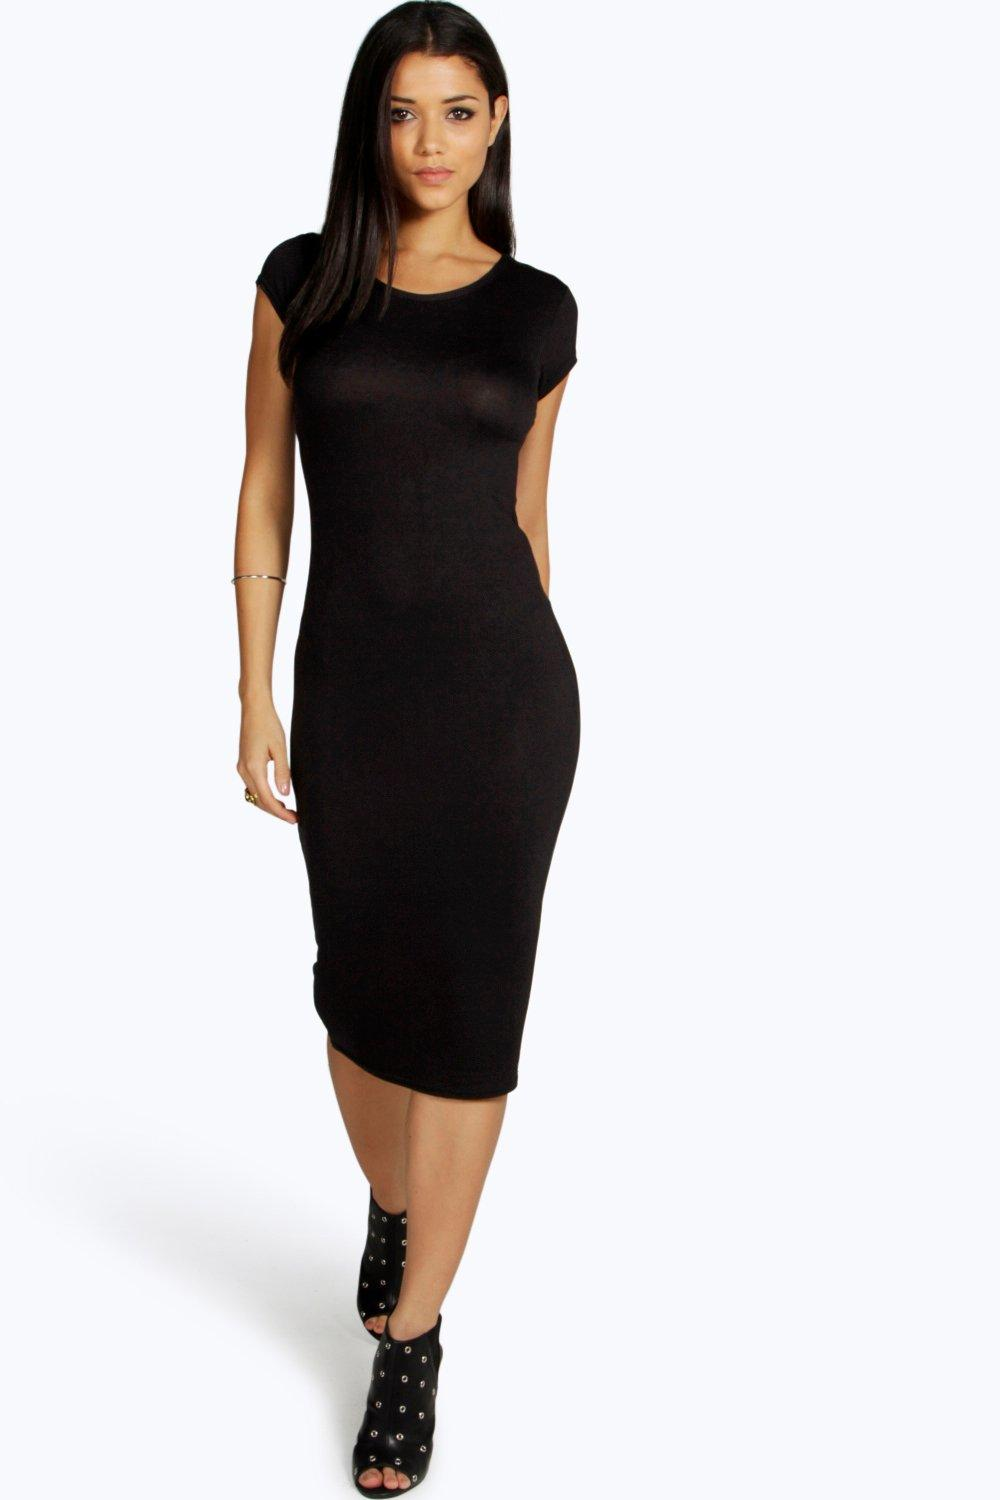 Midi Dress | Mid Length & Pencil Dresses at boohoo.com